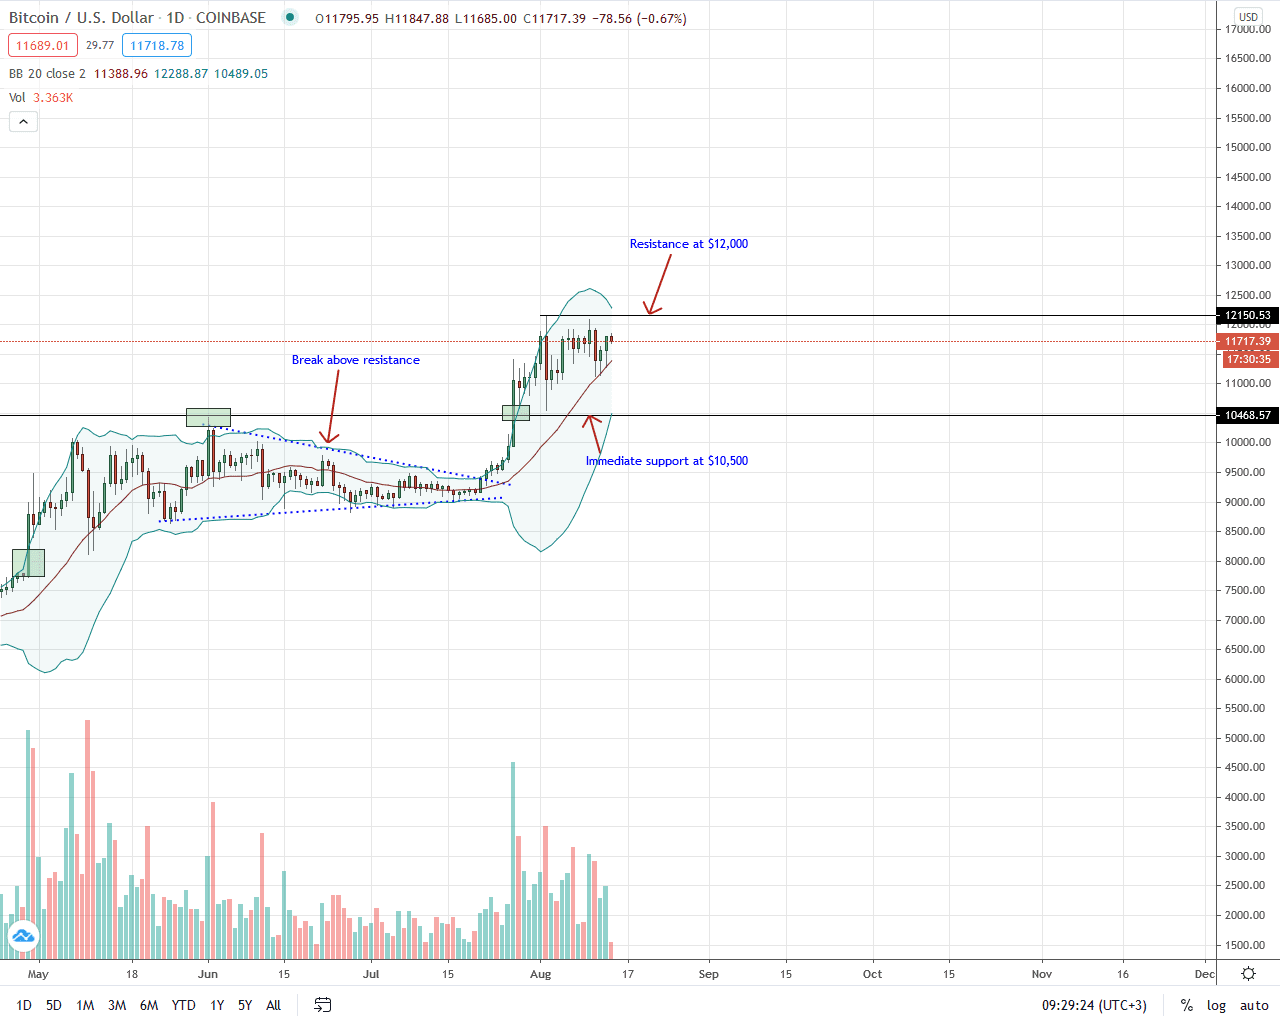 Bitcoin Daily Chart for Aug 14